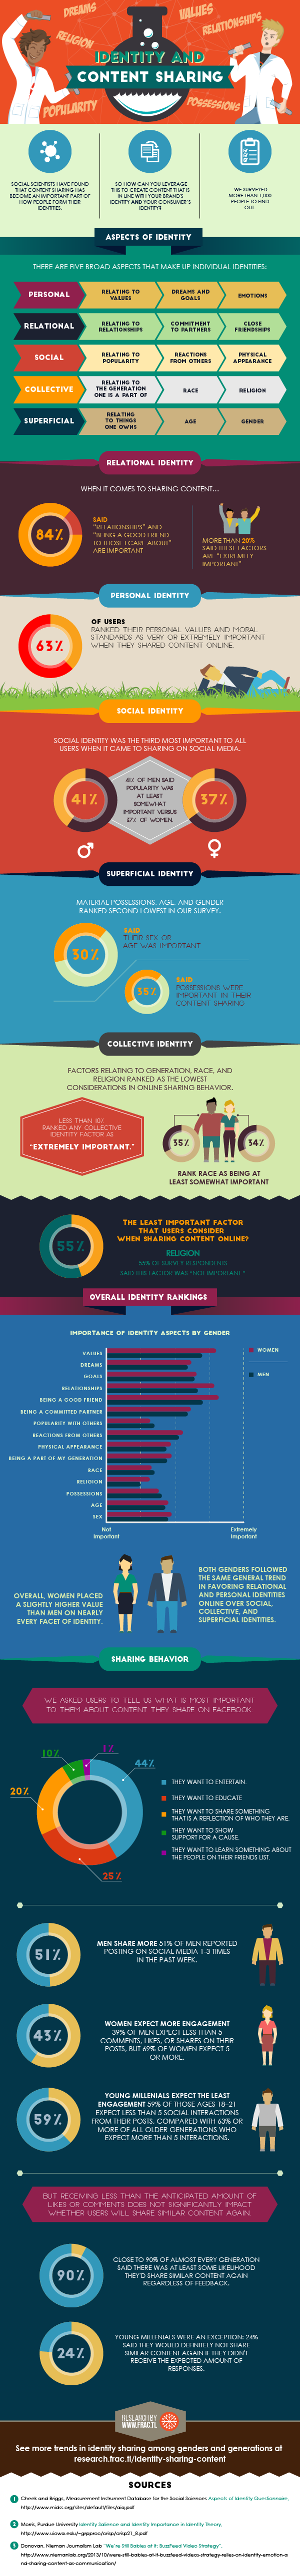 The Link Between Identity And Social Content Sharing:Social scientists have found that content sharing has become an important part of how people form their identities. So how can you leverage this to create content that is in-line with your brand's identity and your consumer's identity? Take a look this infographic, created by frac.tl team, and learn how identity theory can help you create more engaging, highly-shared content.